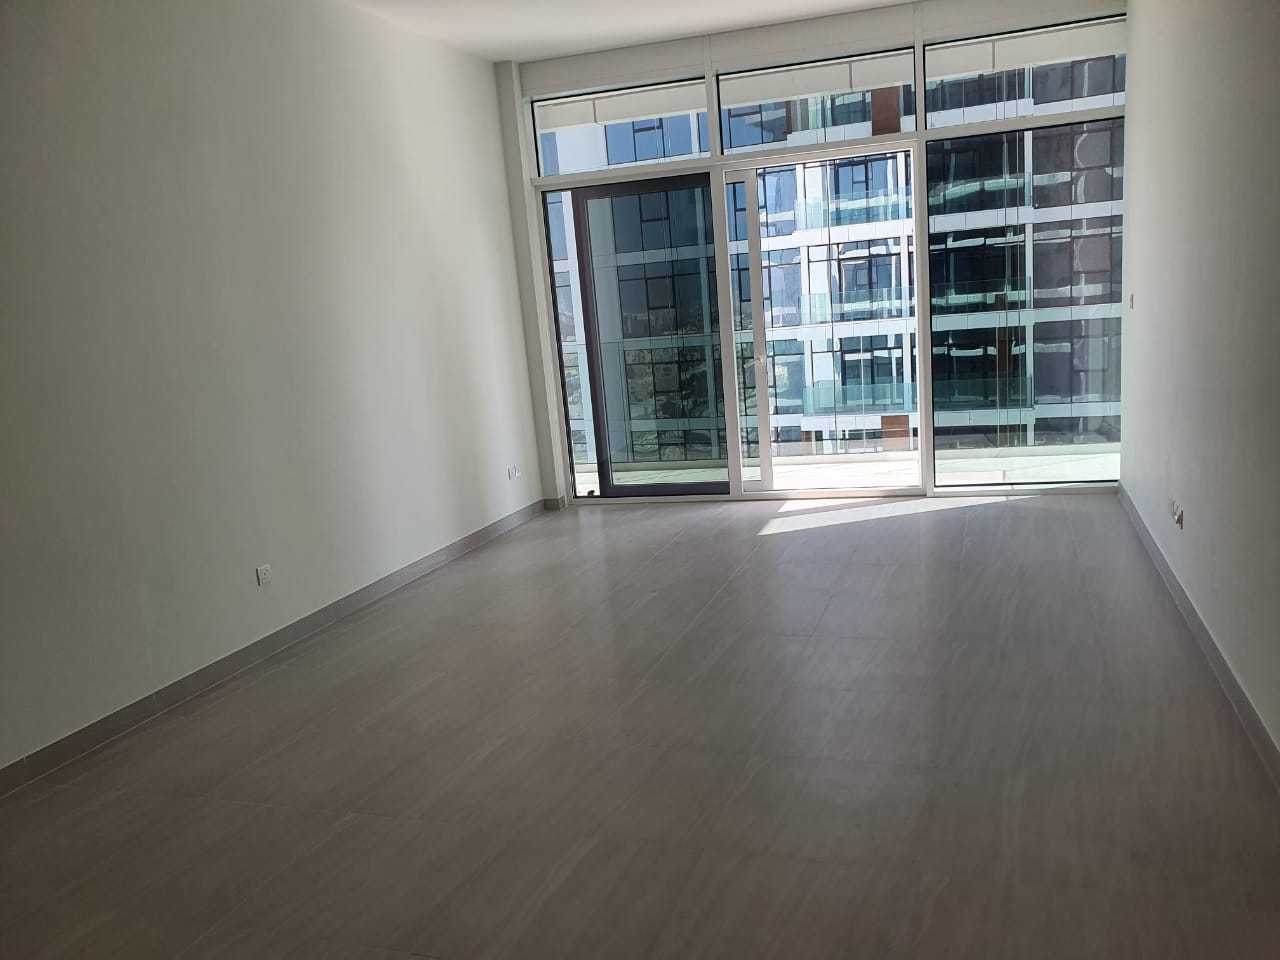 SPACIOUS 3 BDR I READY FOR VIEWING AND LEASING